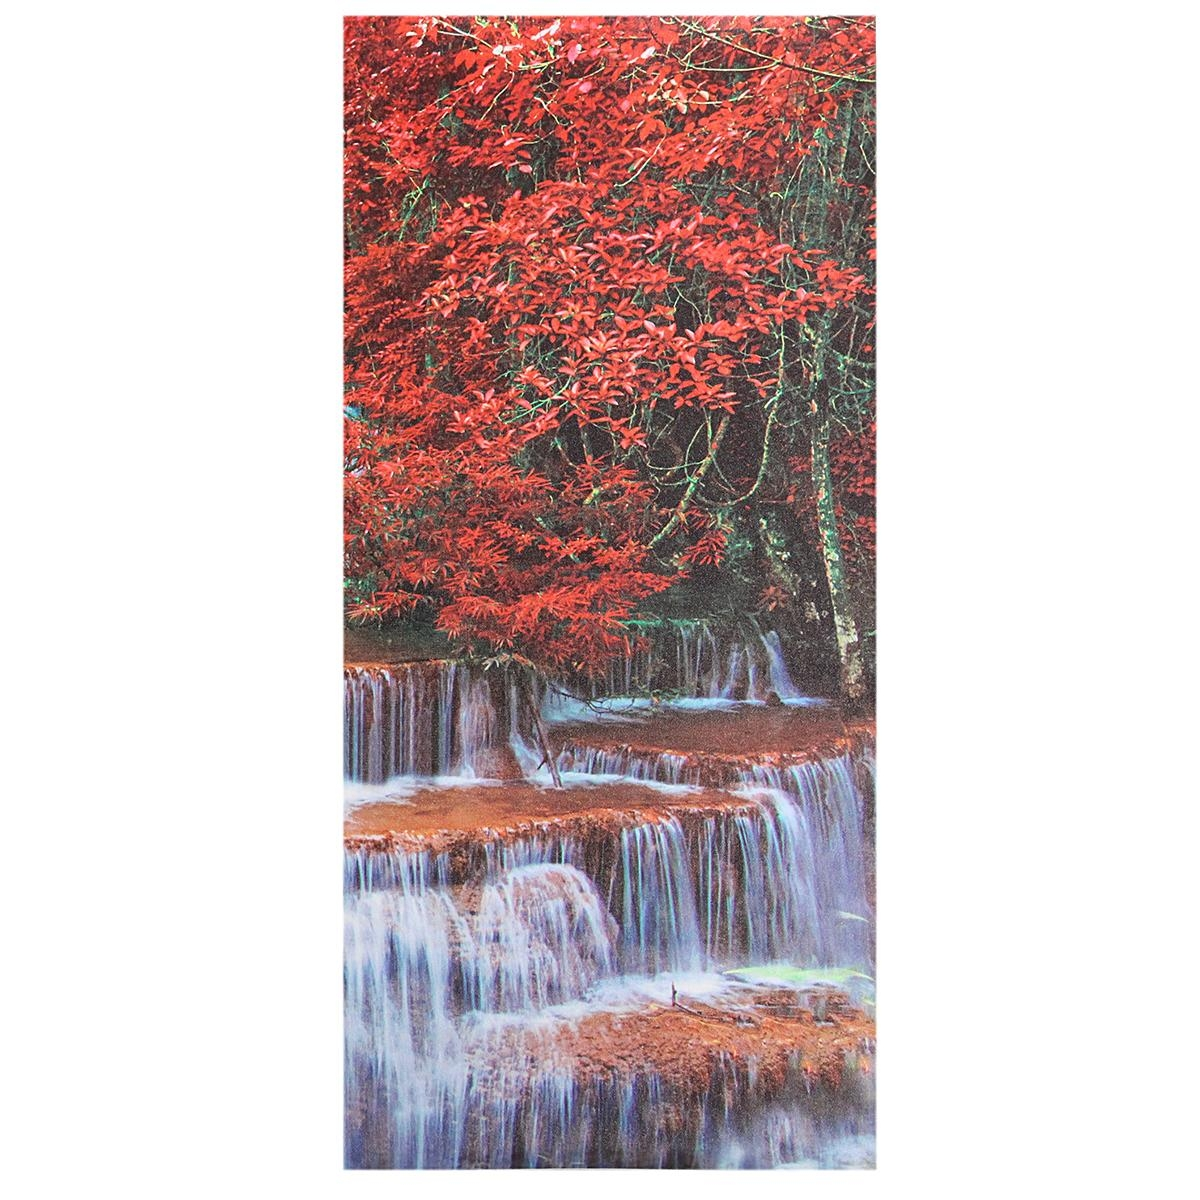 Triptych Frameless Canvas Prints Wall Art Picture Mangrove Forest Within Waterfall Wall Art (Image 14 of 20)